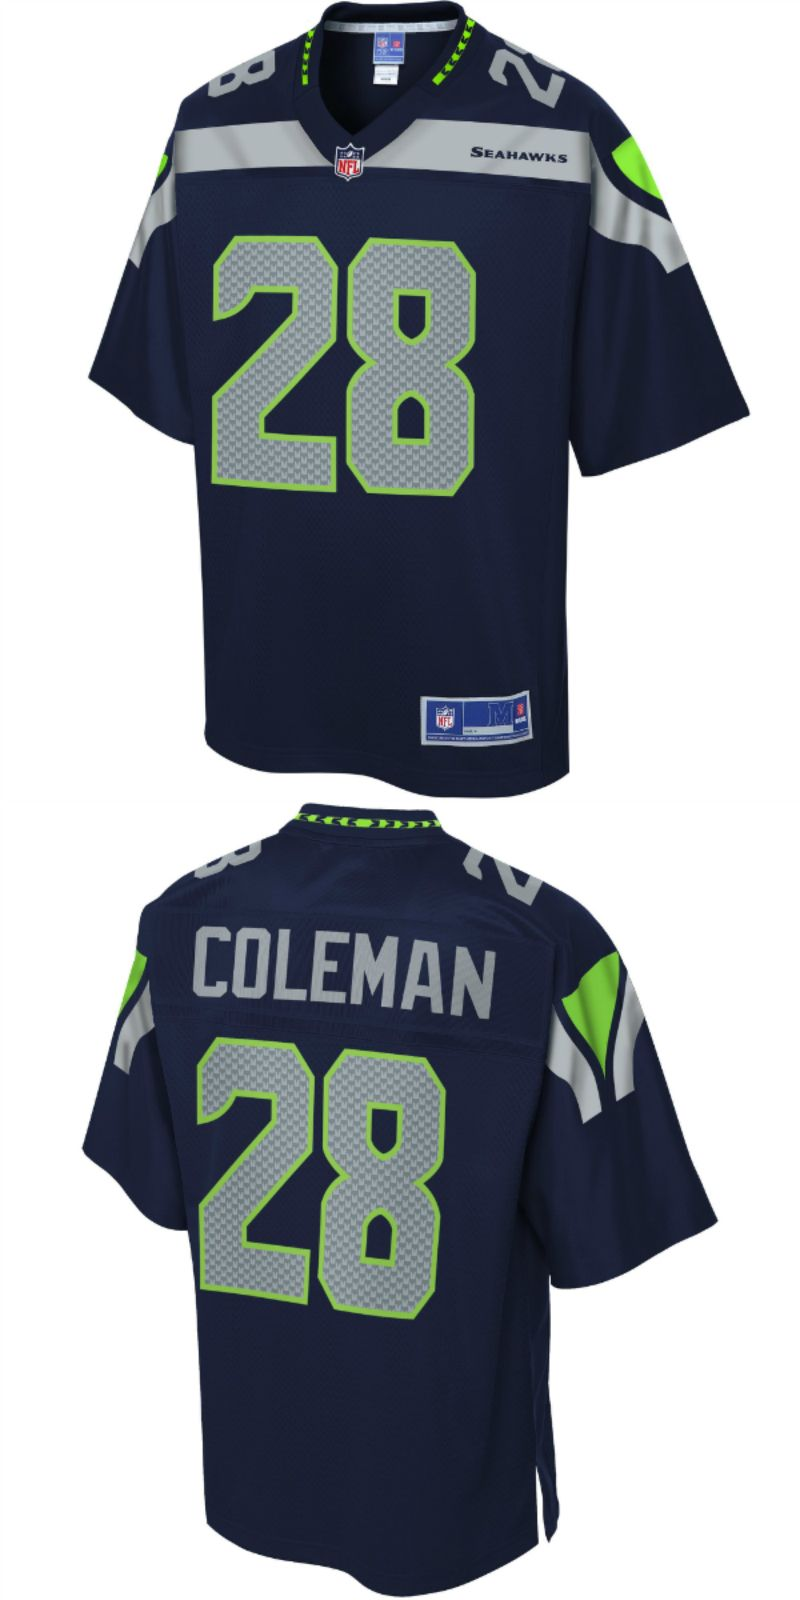 buy popular acf26 f2b5c UP TO 70% OFF. Justin Coleman Seattle Seahawks NFL Pro Line ...